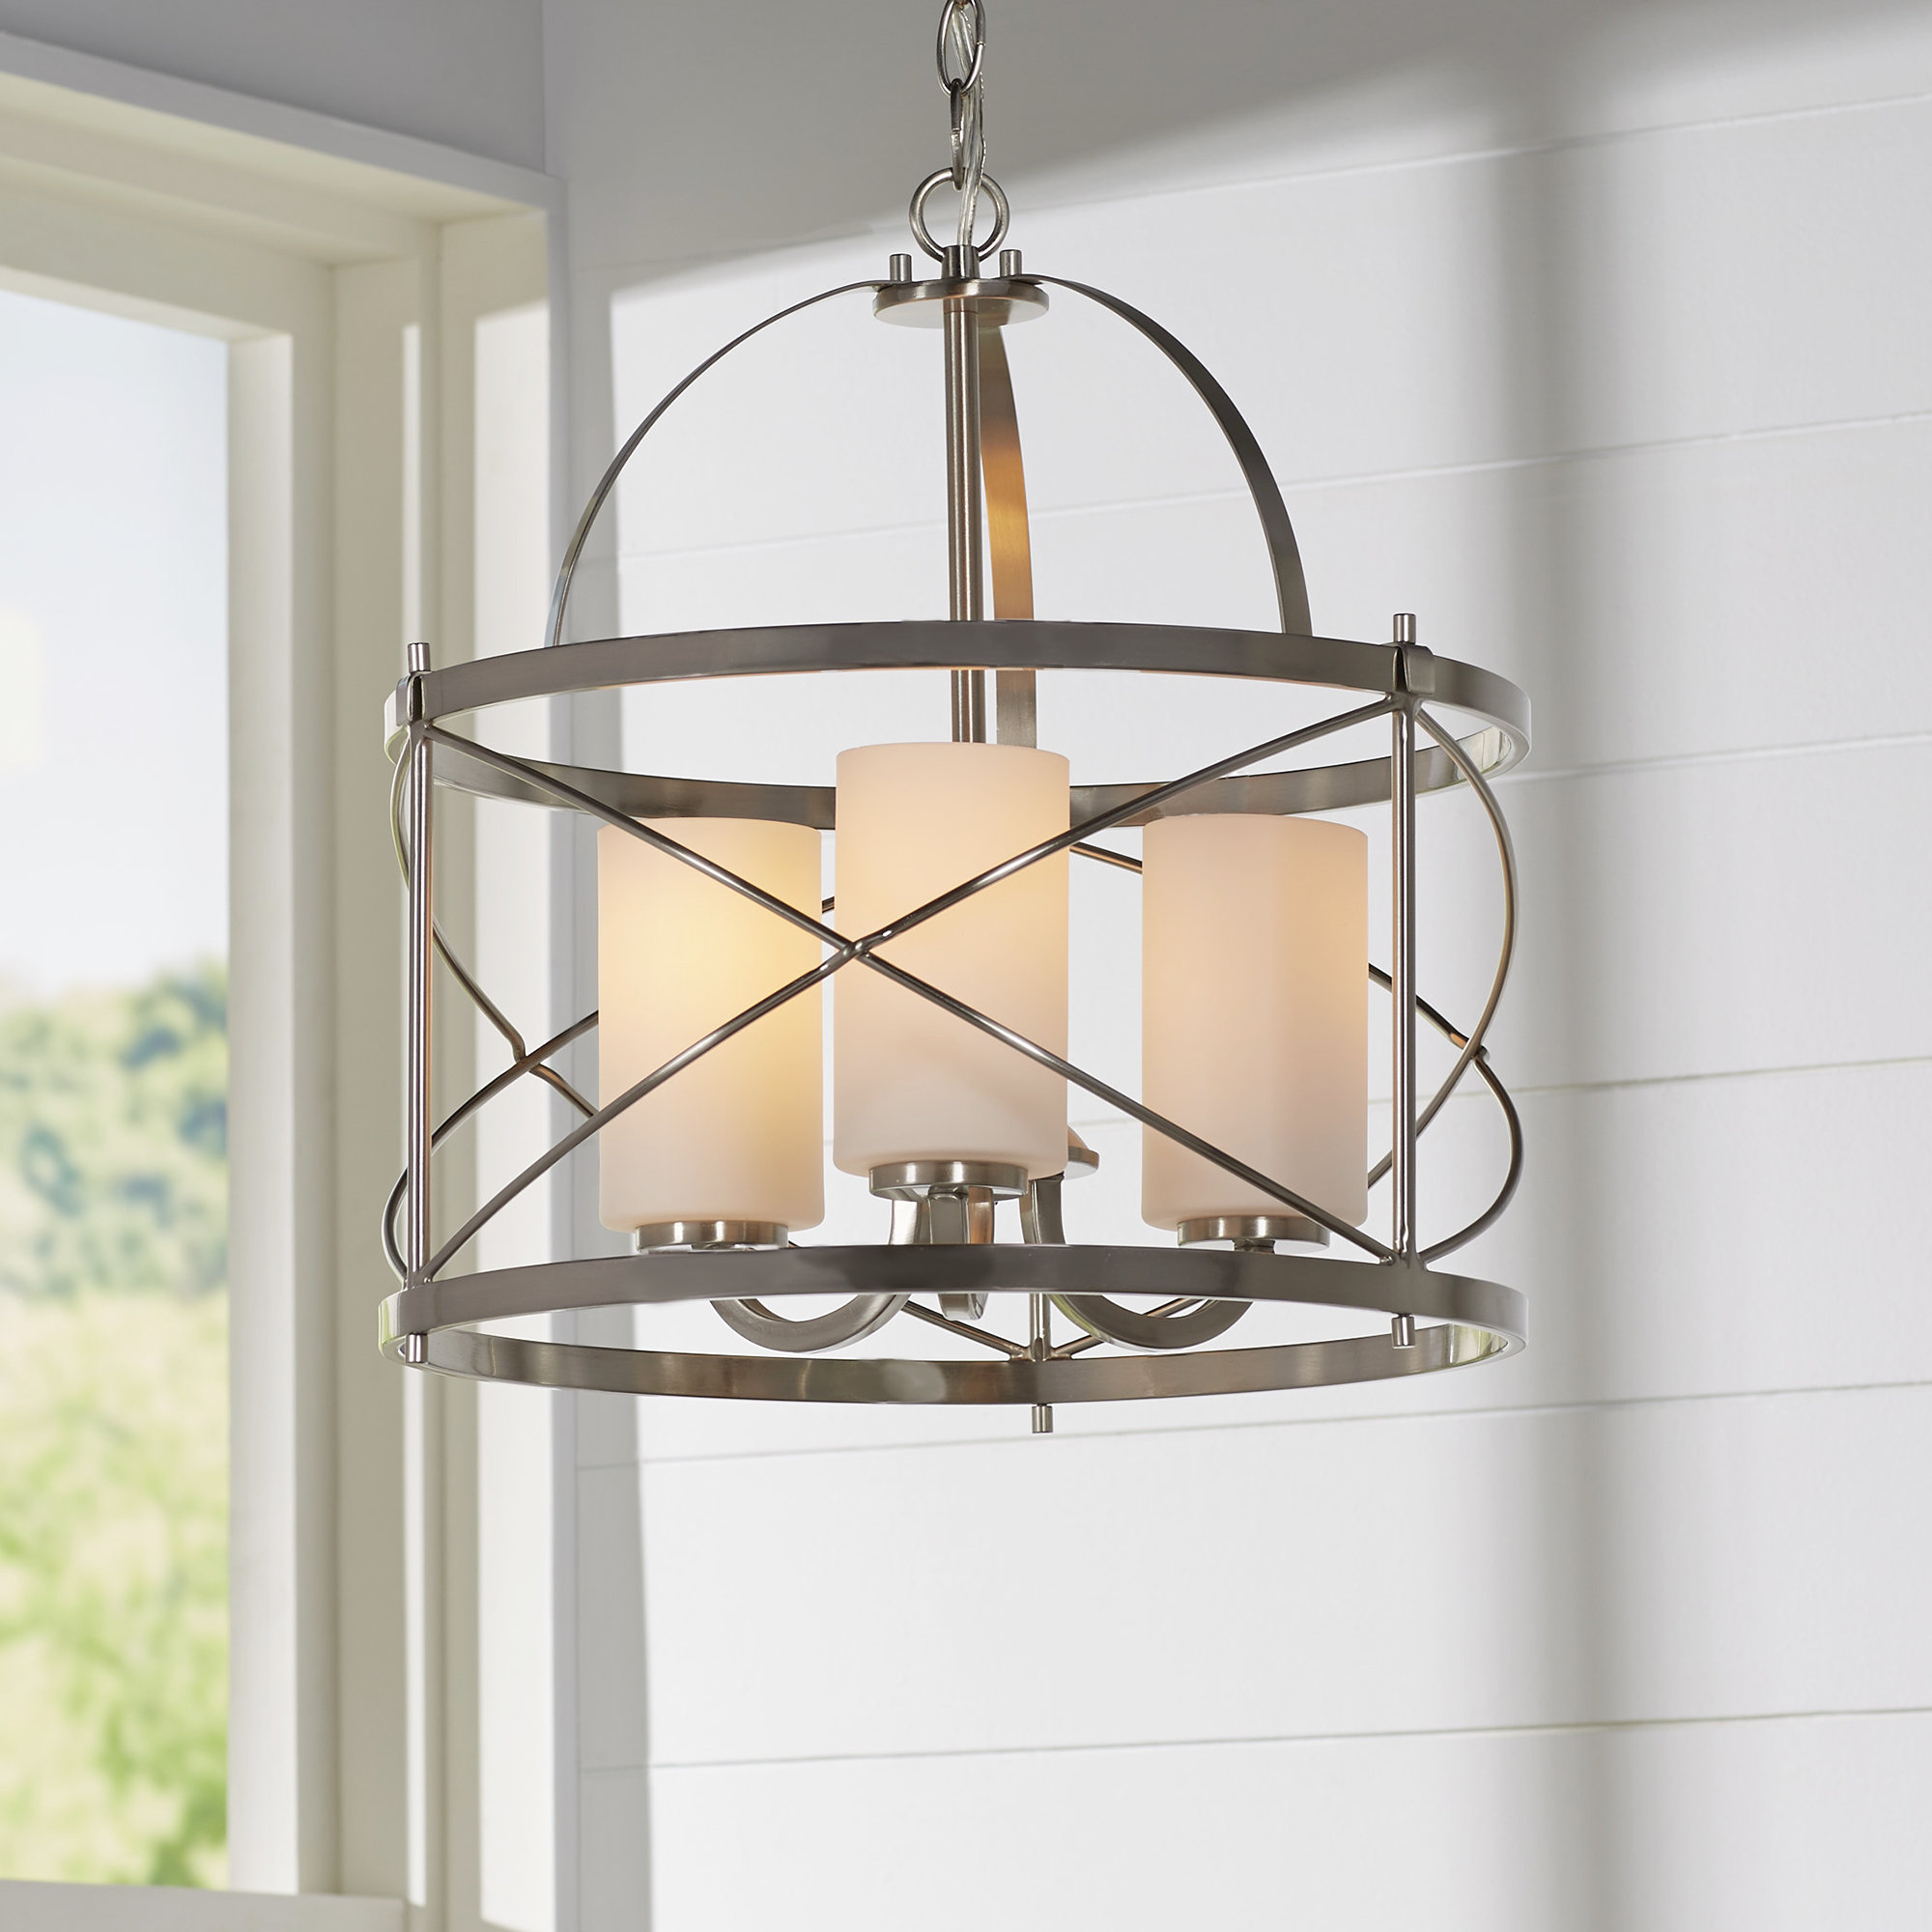 Darby Home Co Farrier 3 Light Lantern Drum Pendant Within Armande 4 Light Lantern Drum Pendants (View 16 of 30)